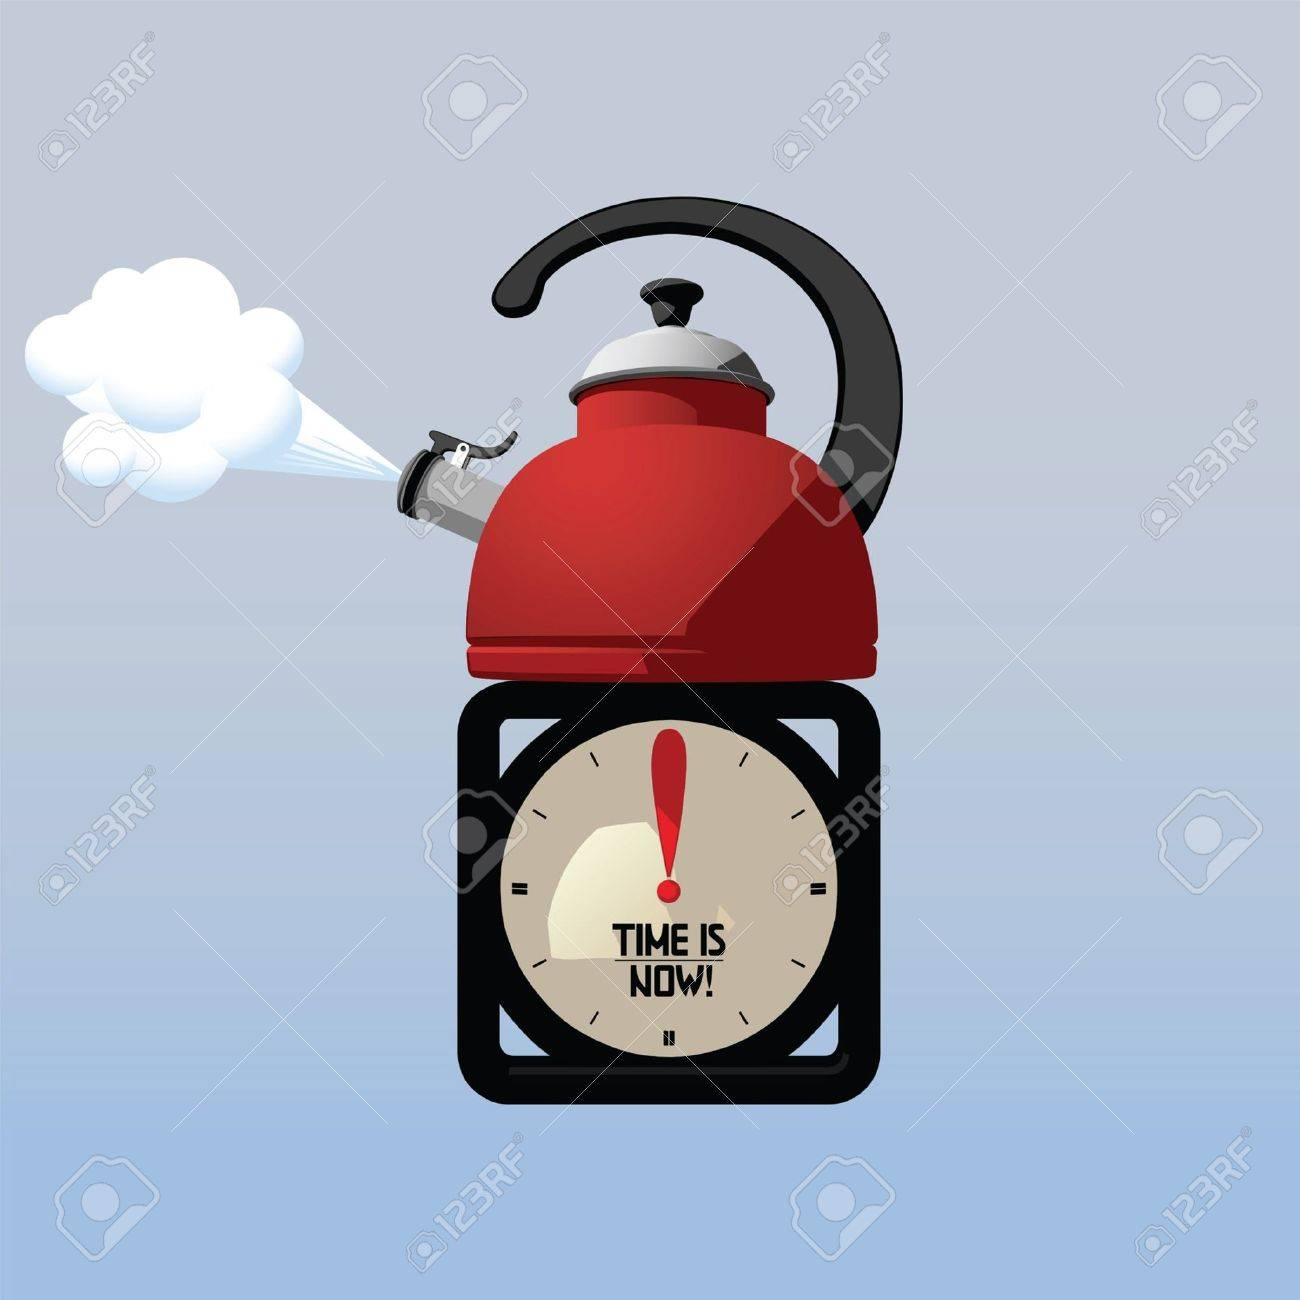 Teapot and Desktop Clock Making Attention to Time for Tea Stock Vector - 9347833